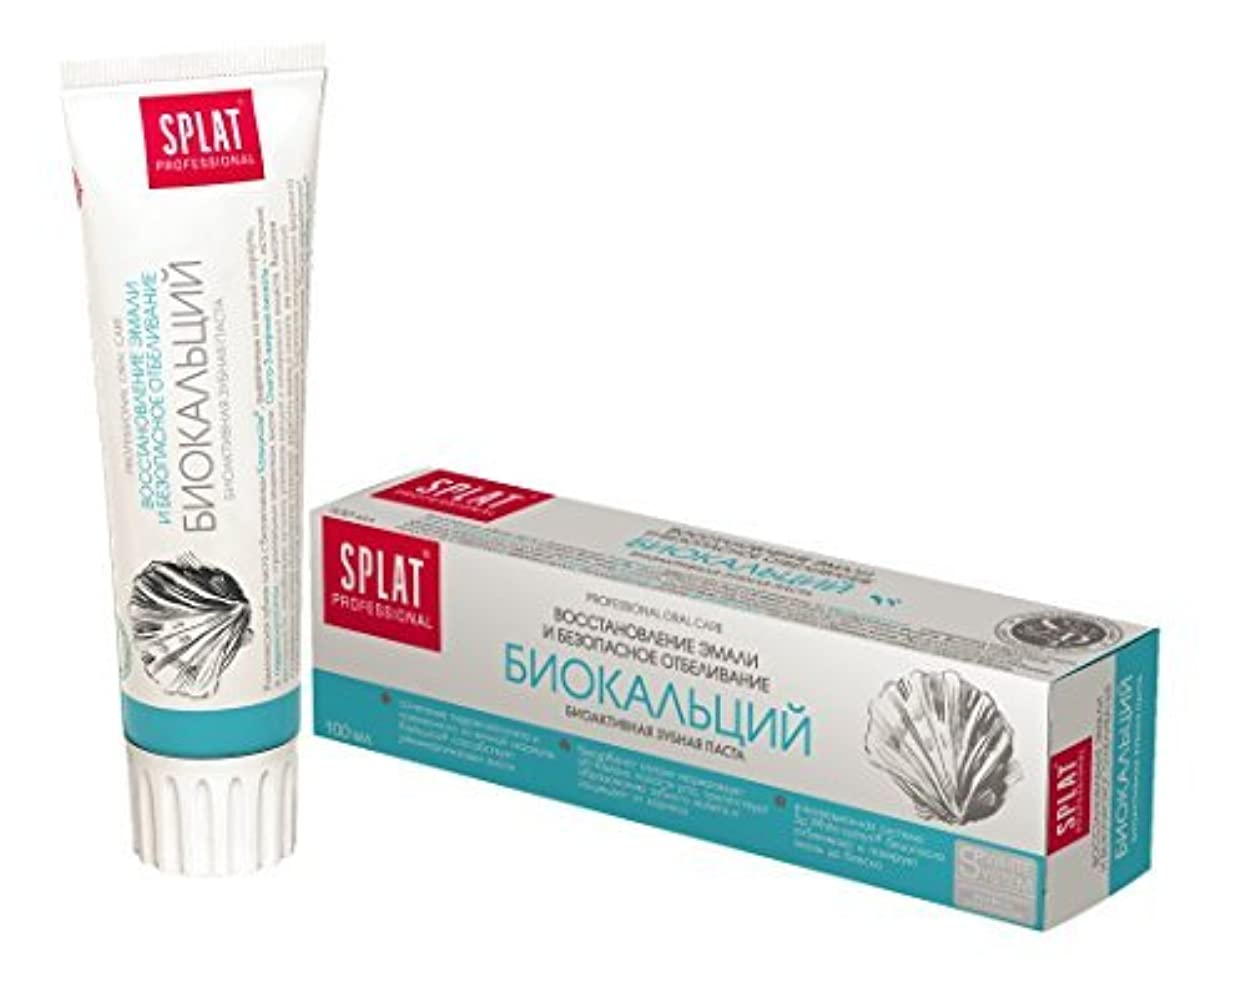 これまでサークル迫害するToothpaste Splat Biocalcium Restores Enamel and Safe Whitening 100ml by Splat